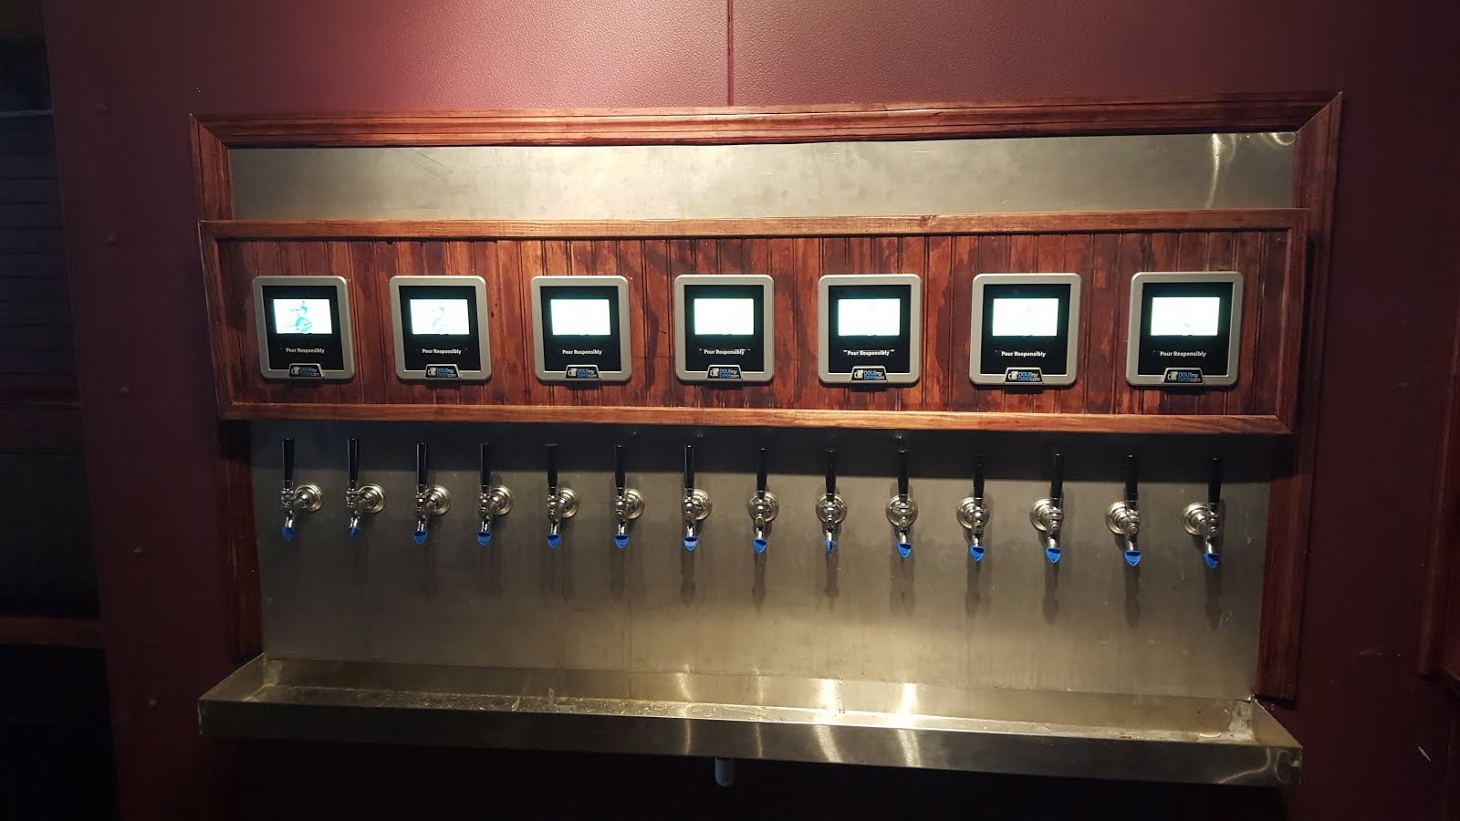 Technological Advances Helping Bring Self Serve Beer To